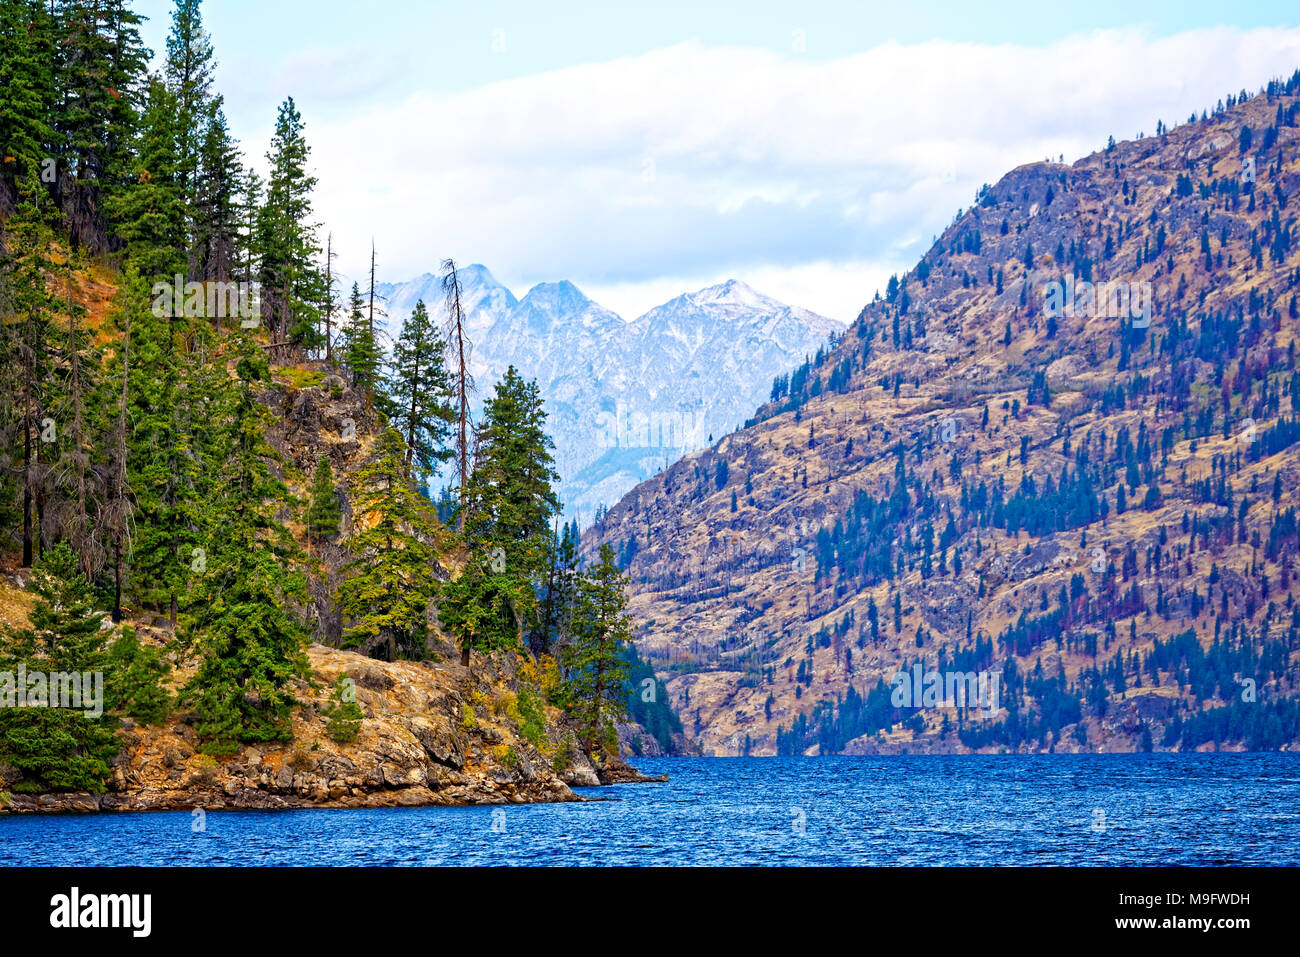 41,926.03489 dry mountains & conifer forests at Lake Chelan, with its deep canyon & scattered fall color, old forest fire hillside in the distance - Stock Image